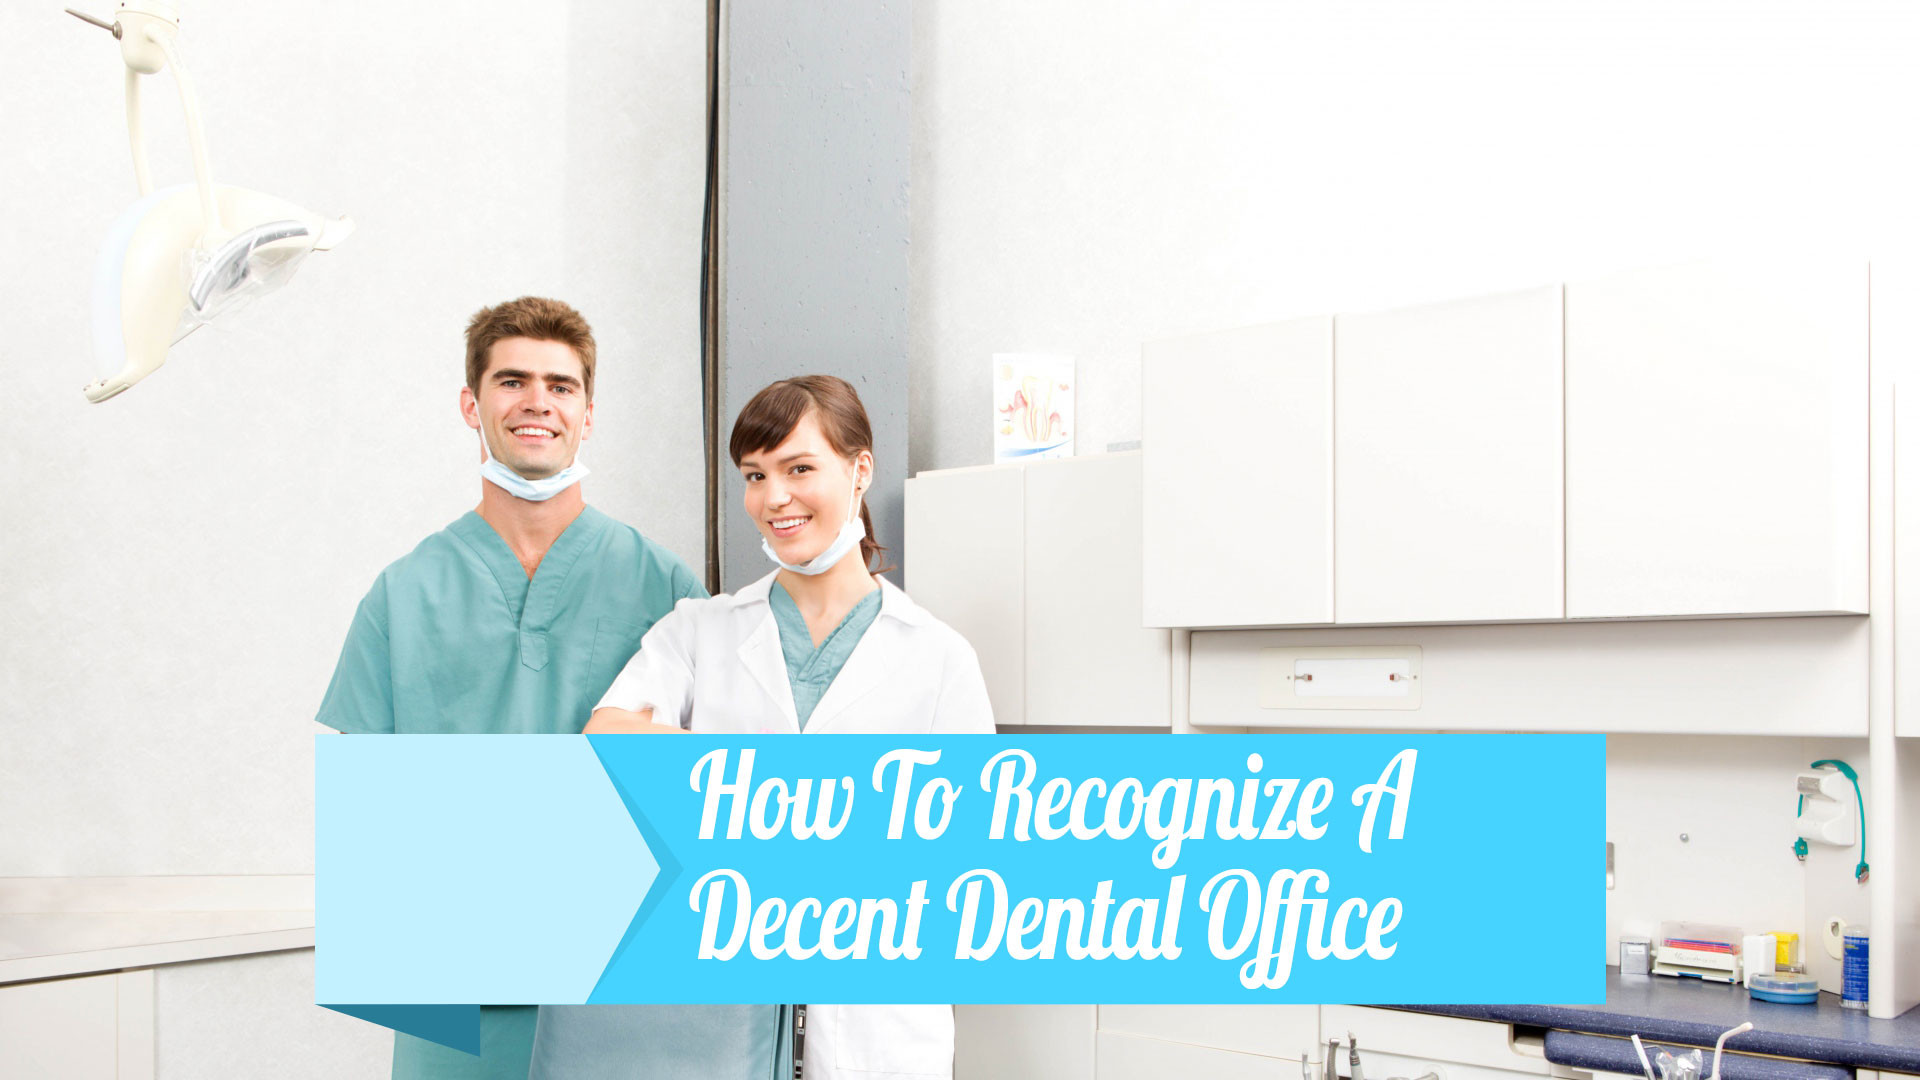 How To Recognize A Decent Dental Office